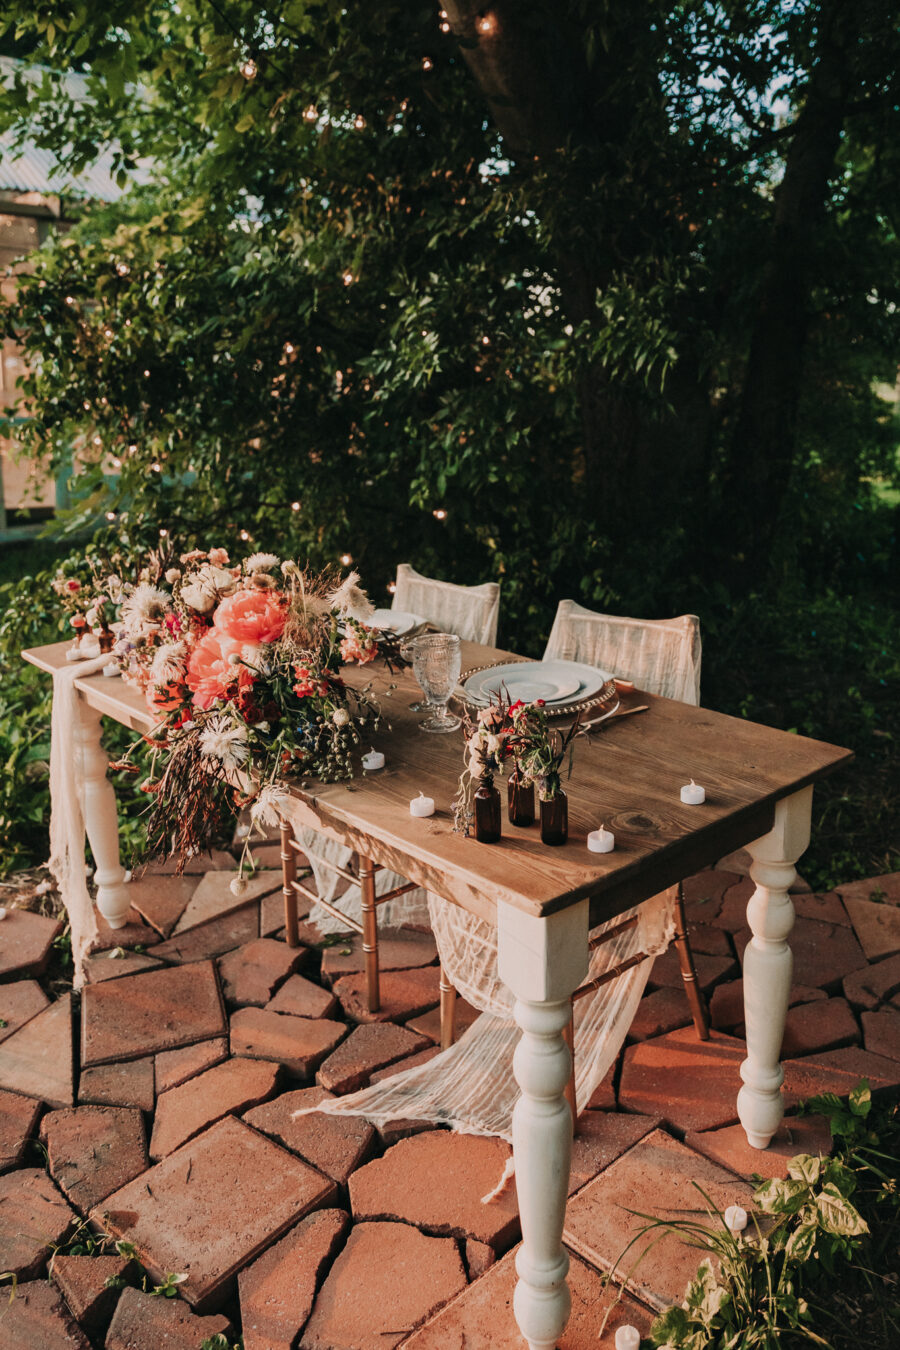 Outdoor wedding reception table: Flower Farm Styled Shoot by Billie-Shaye Style featured on Nashville Bride Guide